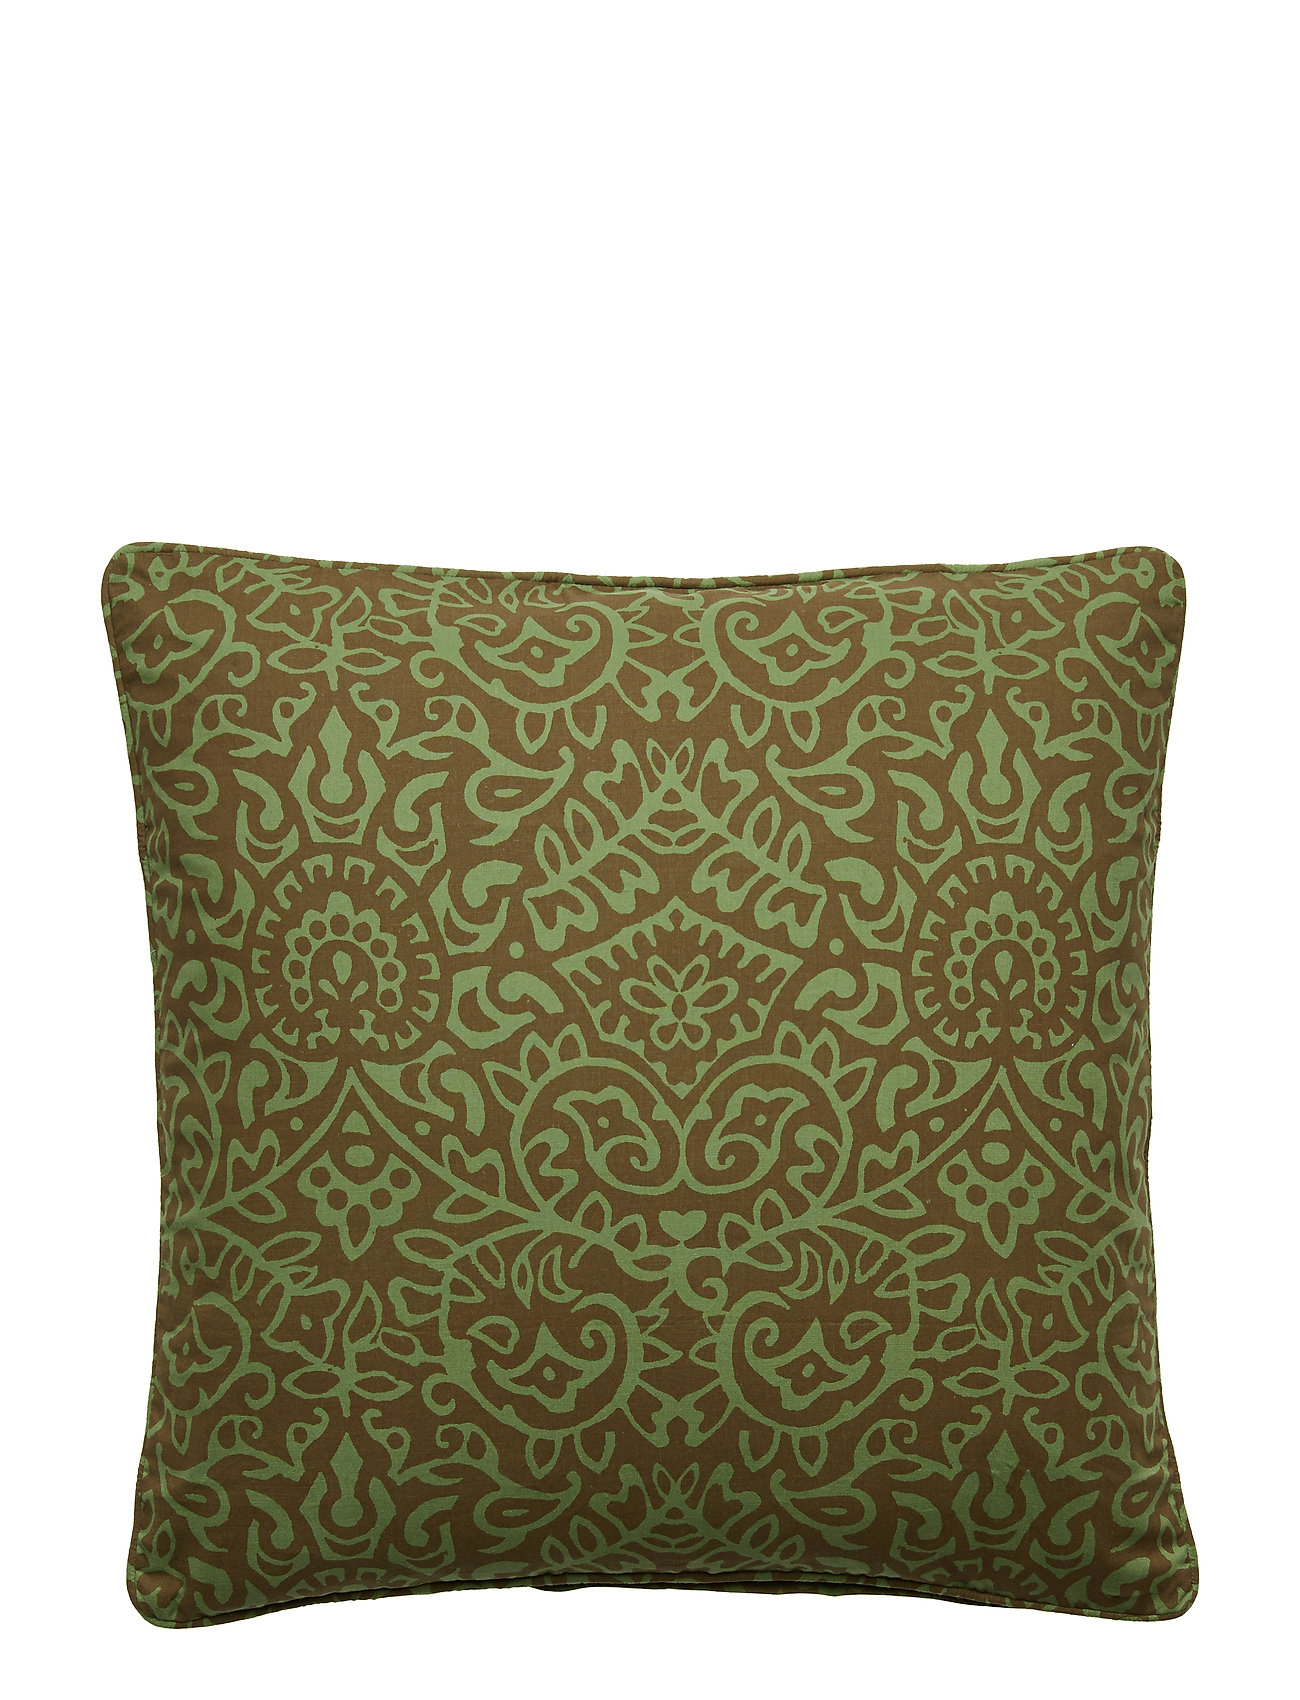 DAY Home Day Hippie Cushion Cover - BAHCE